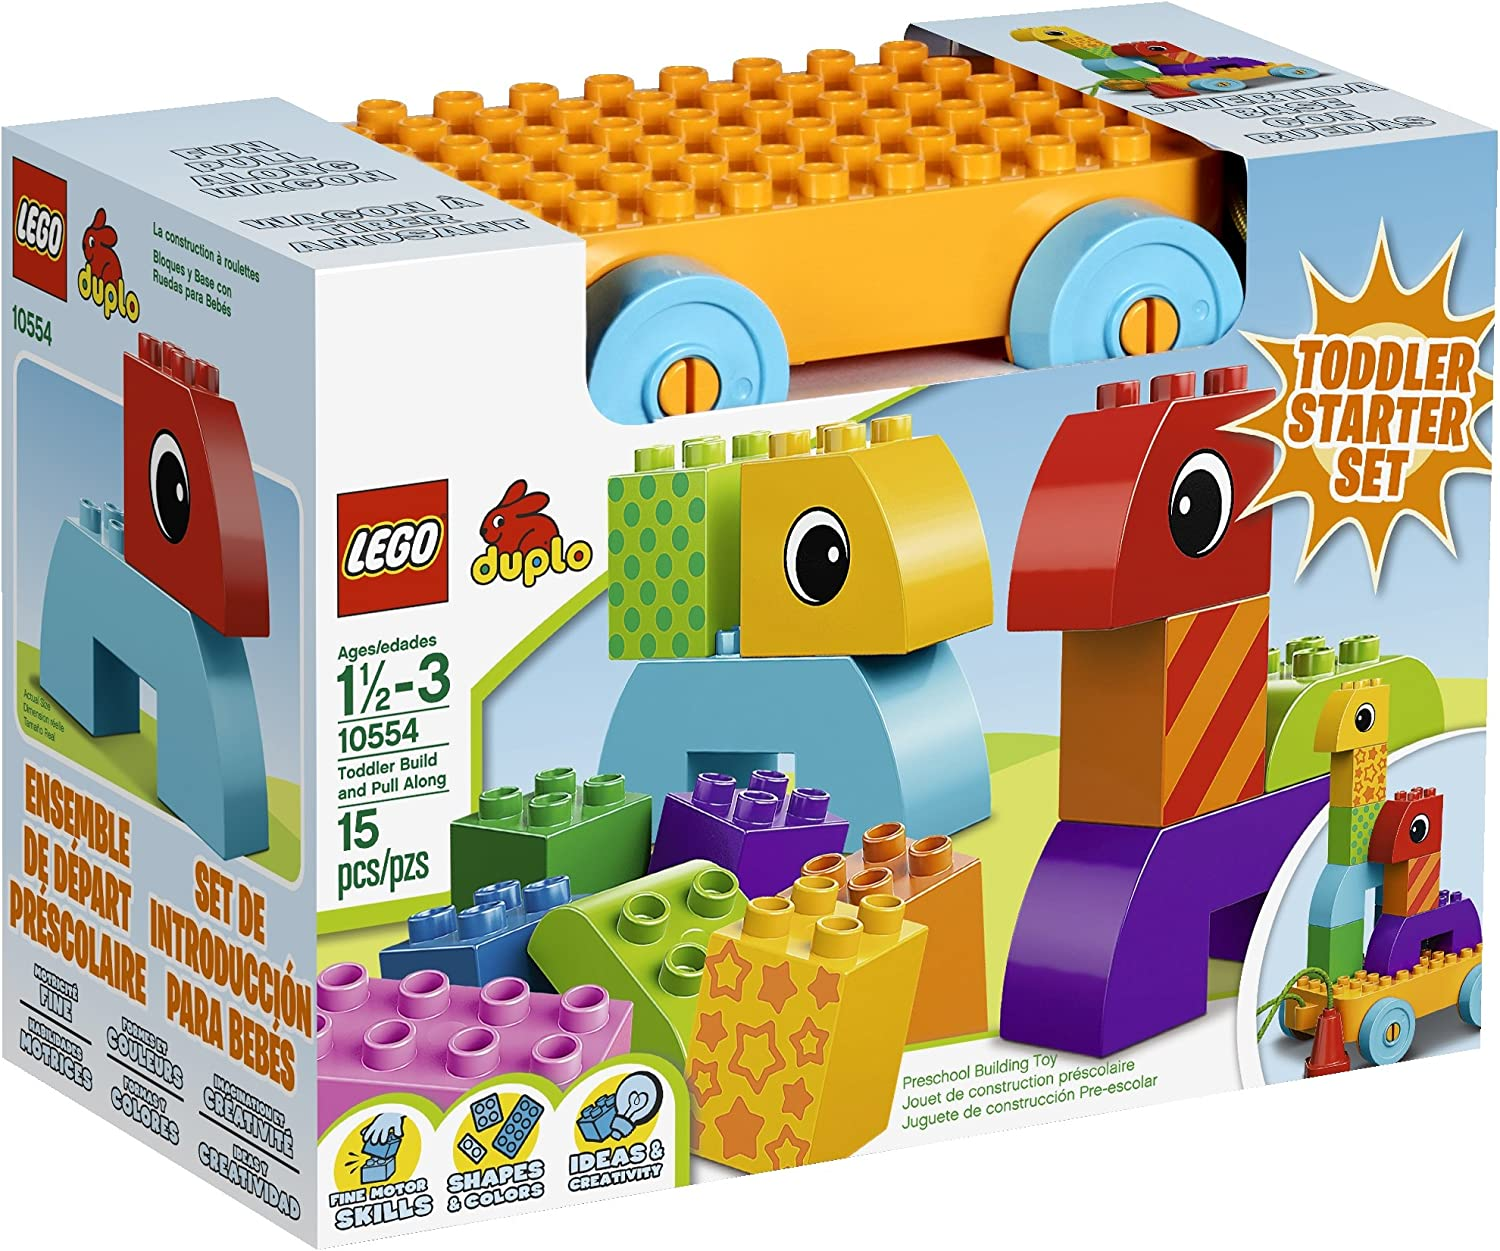 LEGO DUPLO Toddler Build and Pull Along Building Set 10554 by LEGO